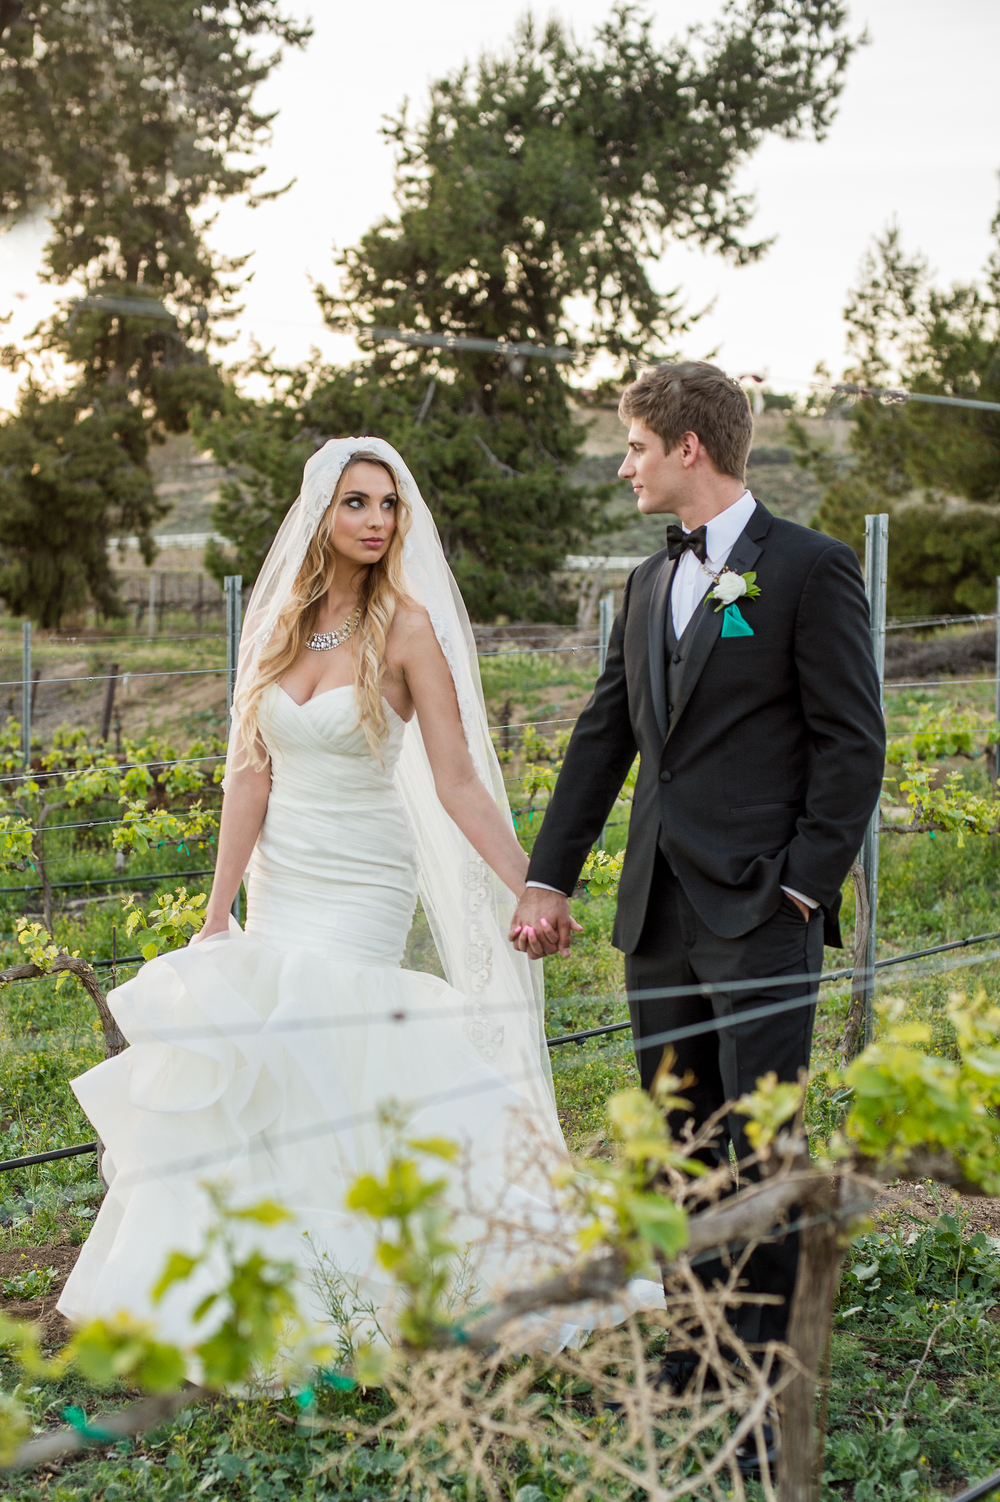 Temecula Wedding Hair and Makeup | Temecula Winery Wedding | Fazeli Cellars Wedding